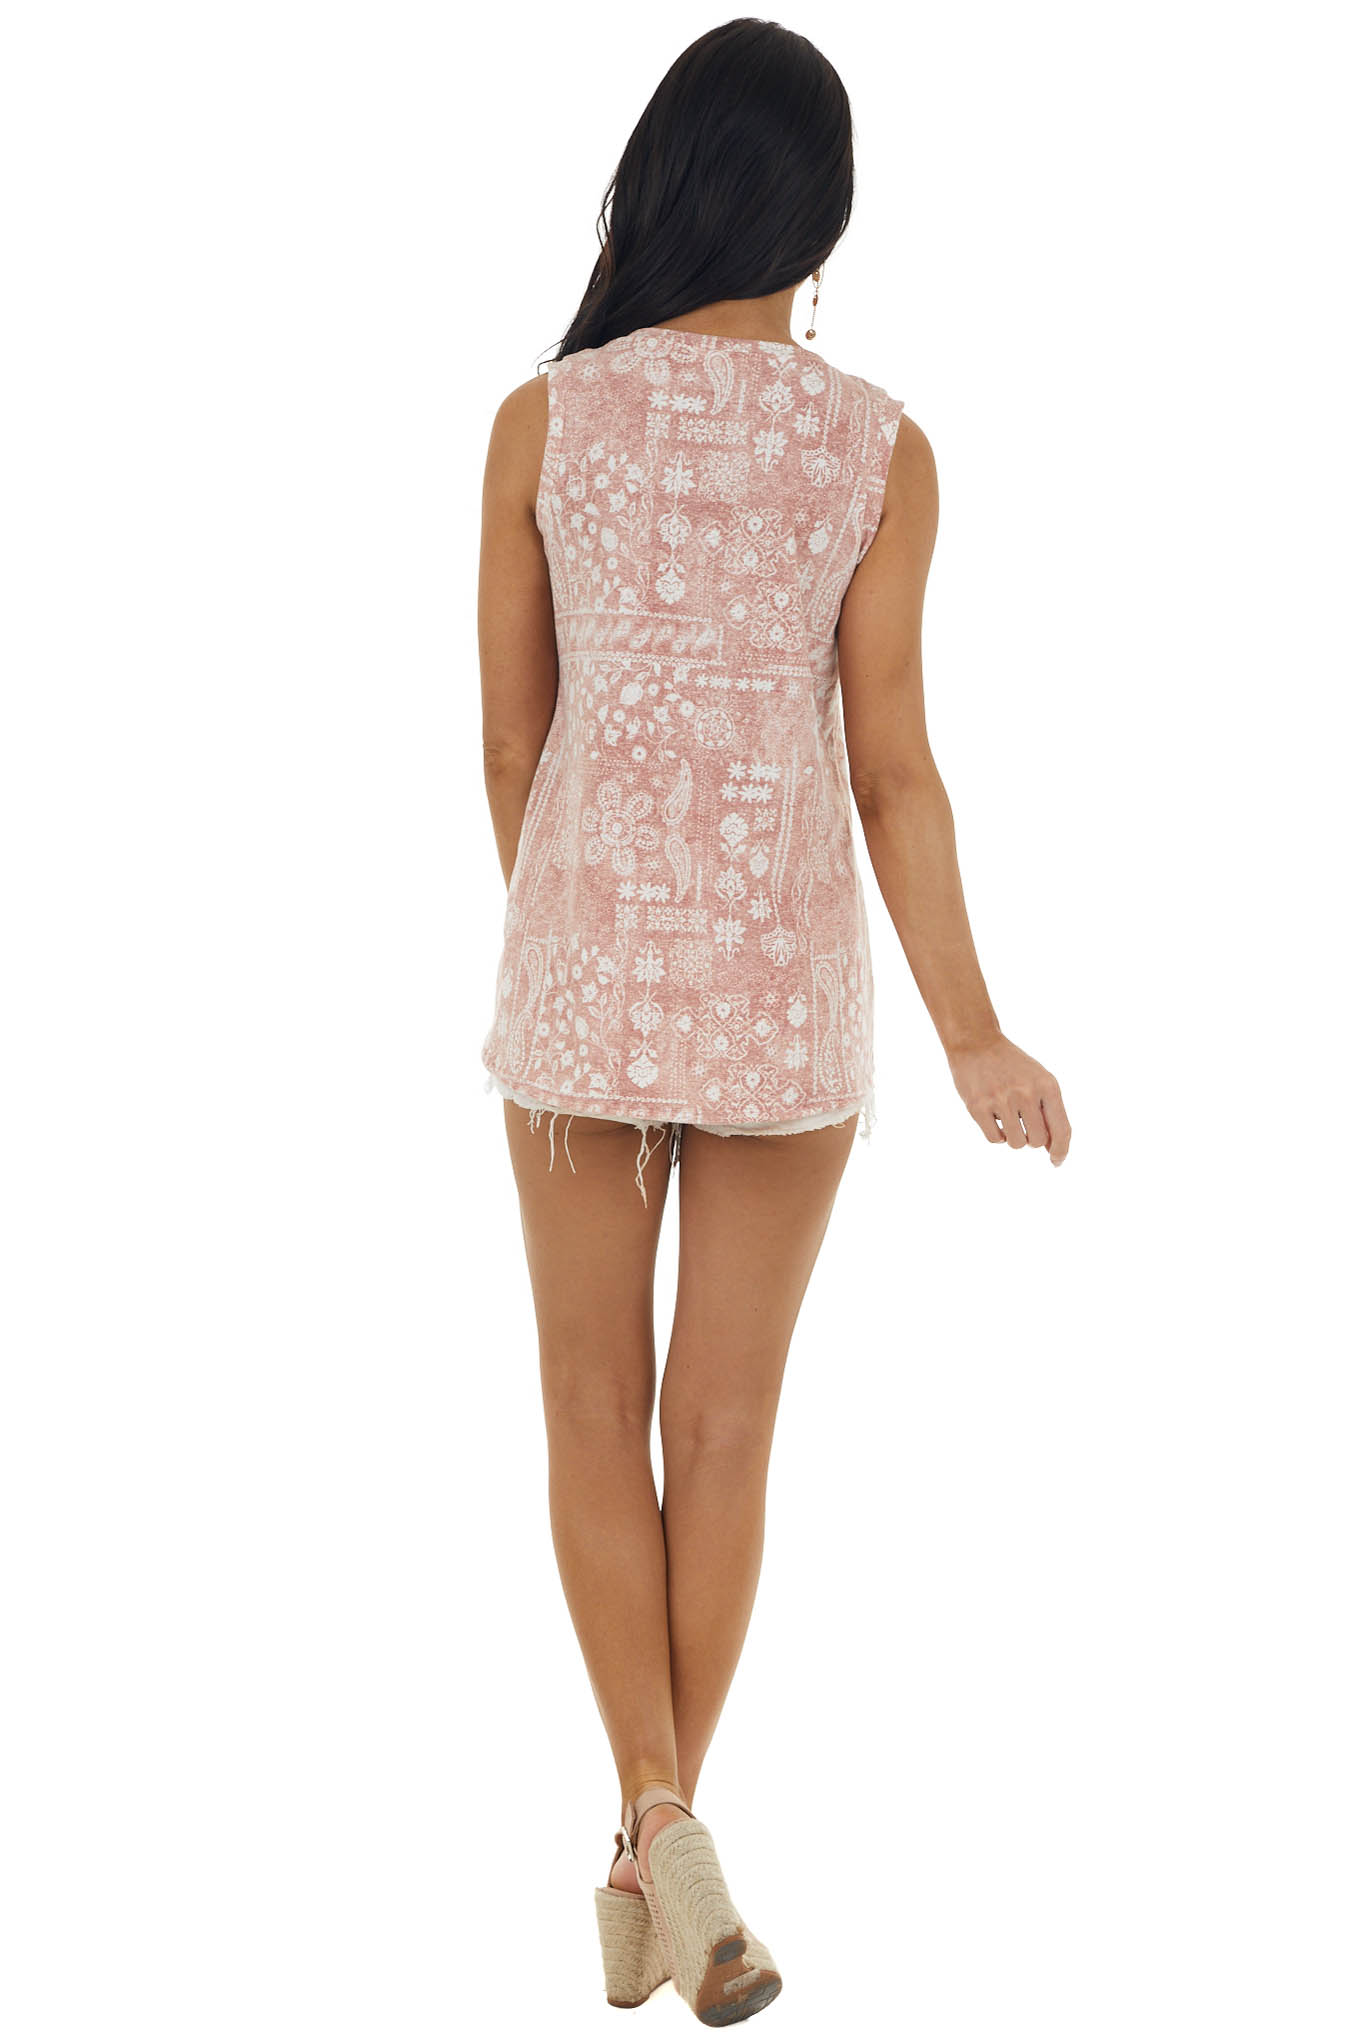 Dusty Rose Abstract Print Criss Cross Neck Top